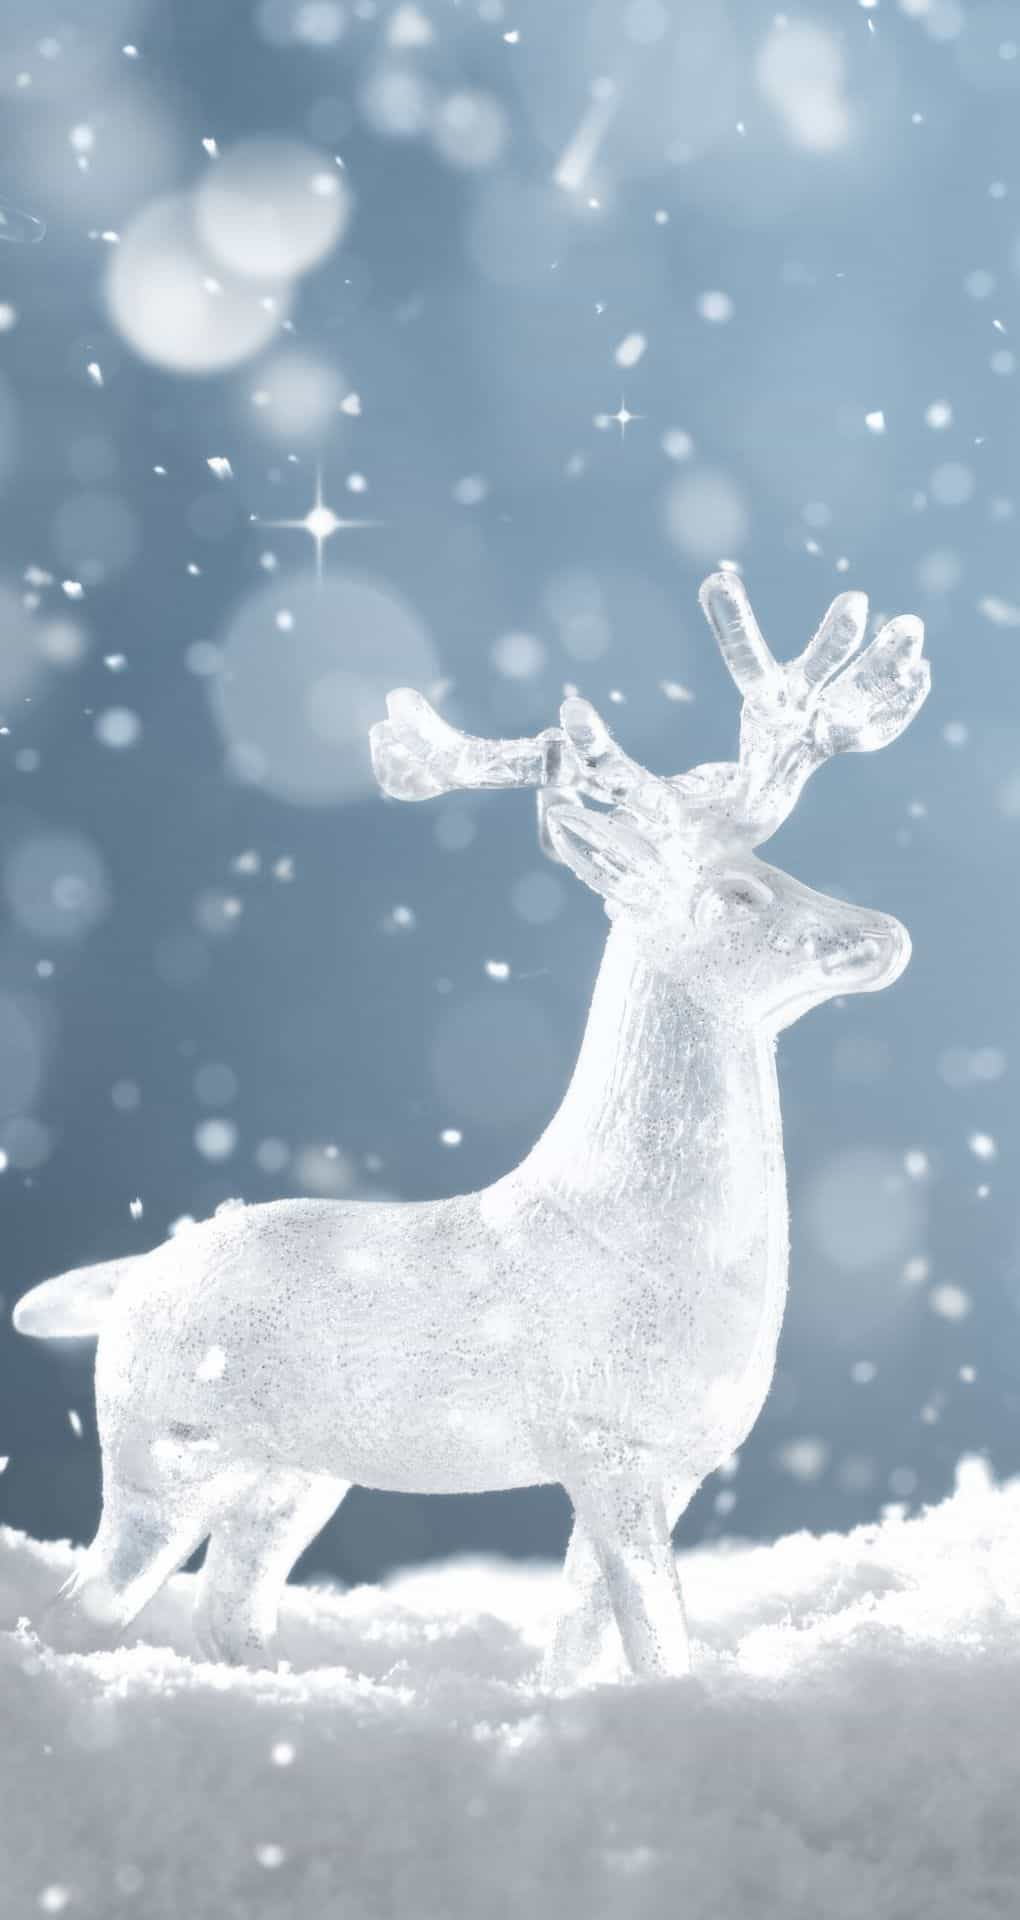 Christmas Wallpaper for iPhone | FREE